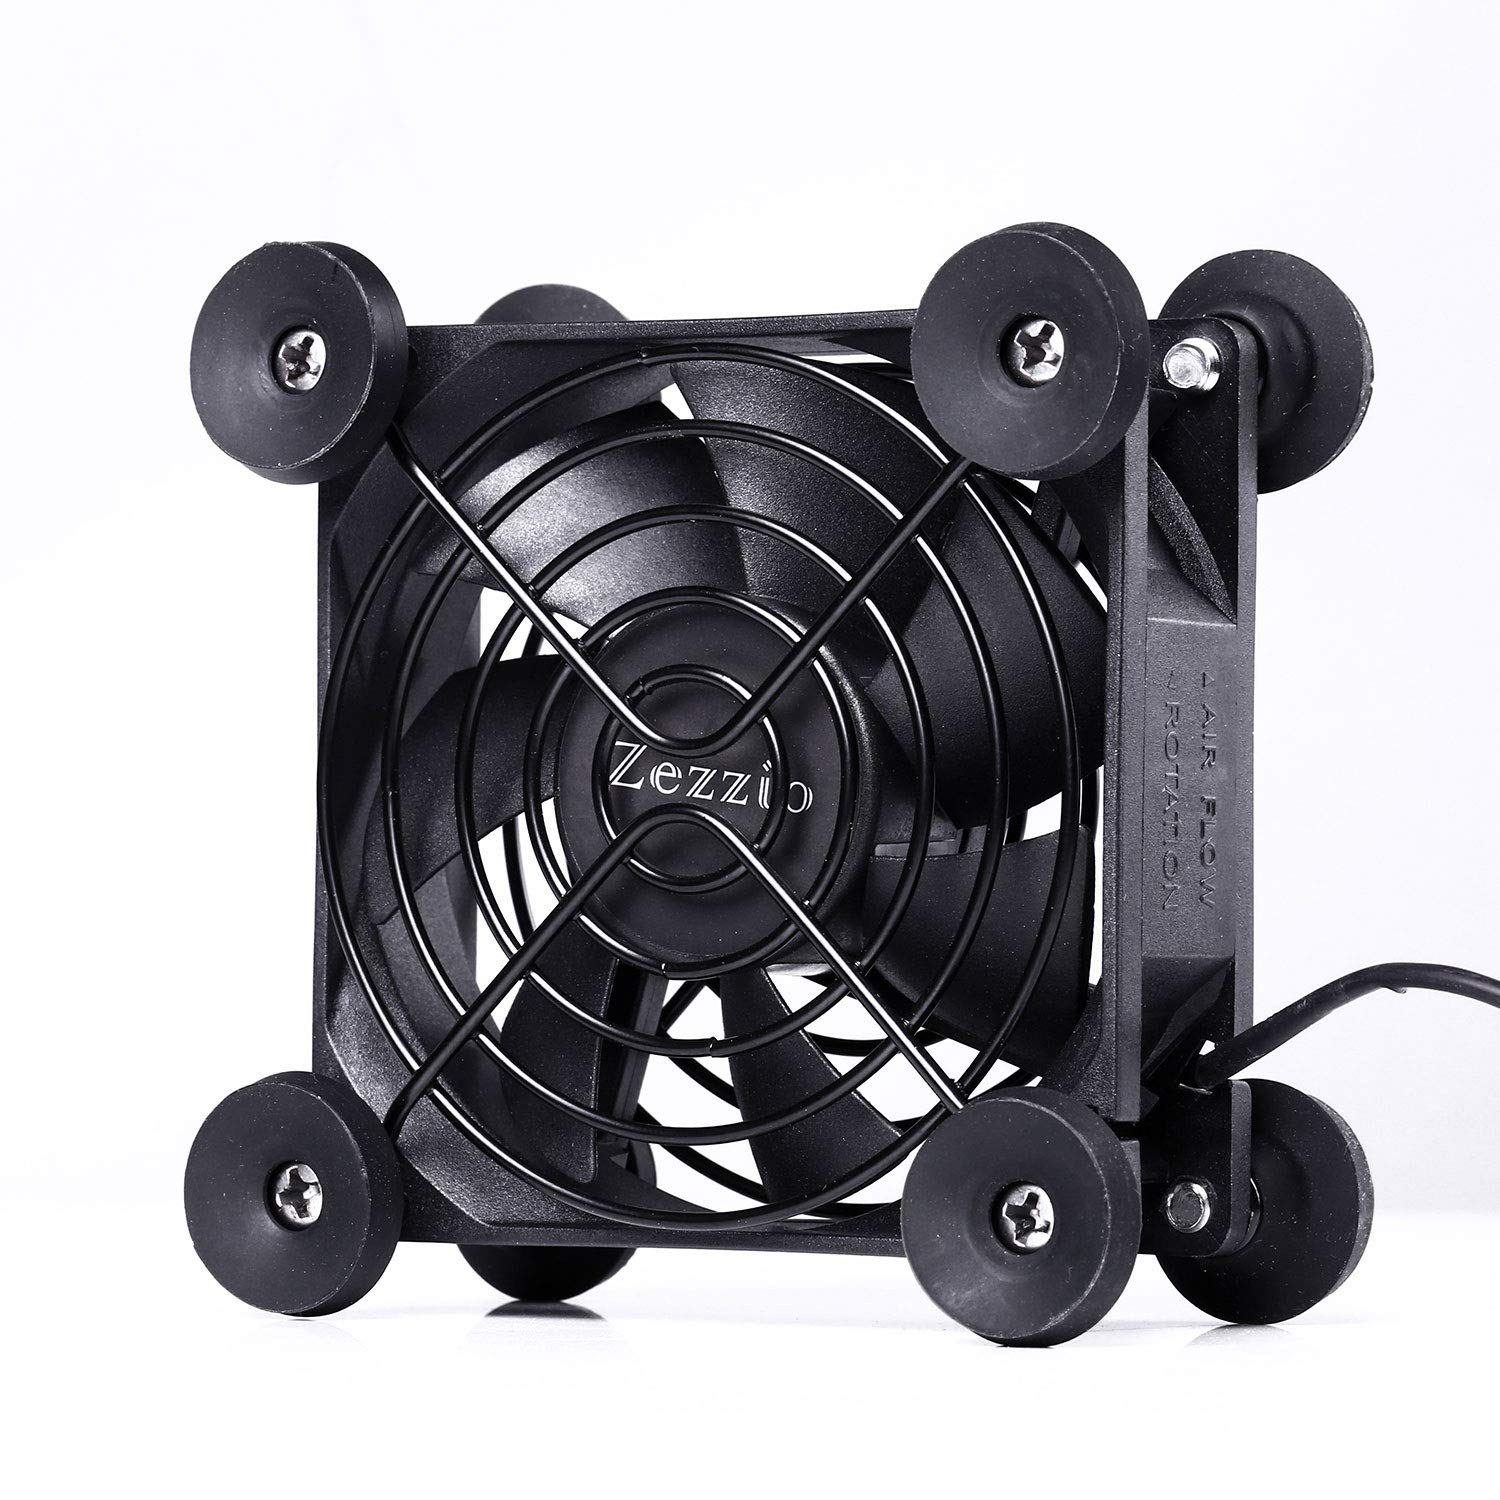 80mm USB Cooling Fan for AV Receiver DVR Playstation/TV Box/Game Console